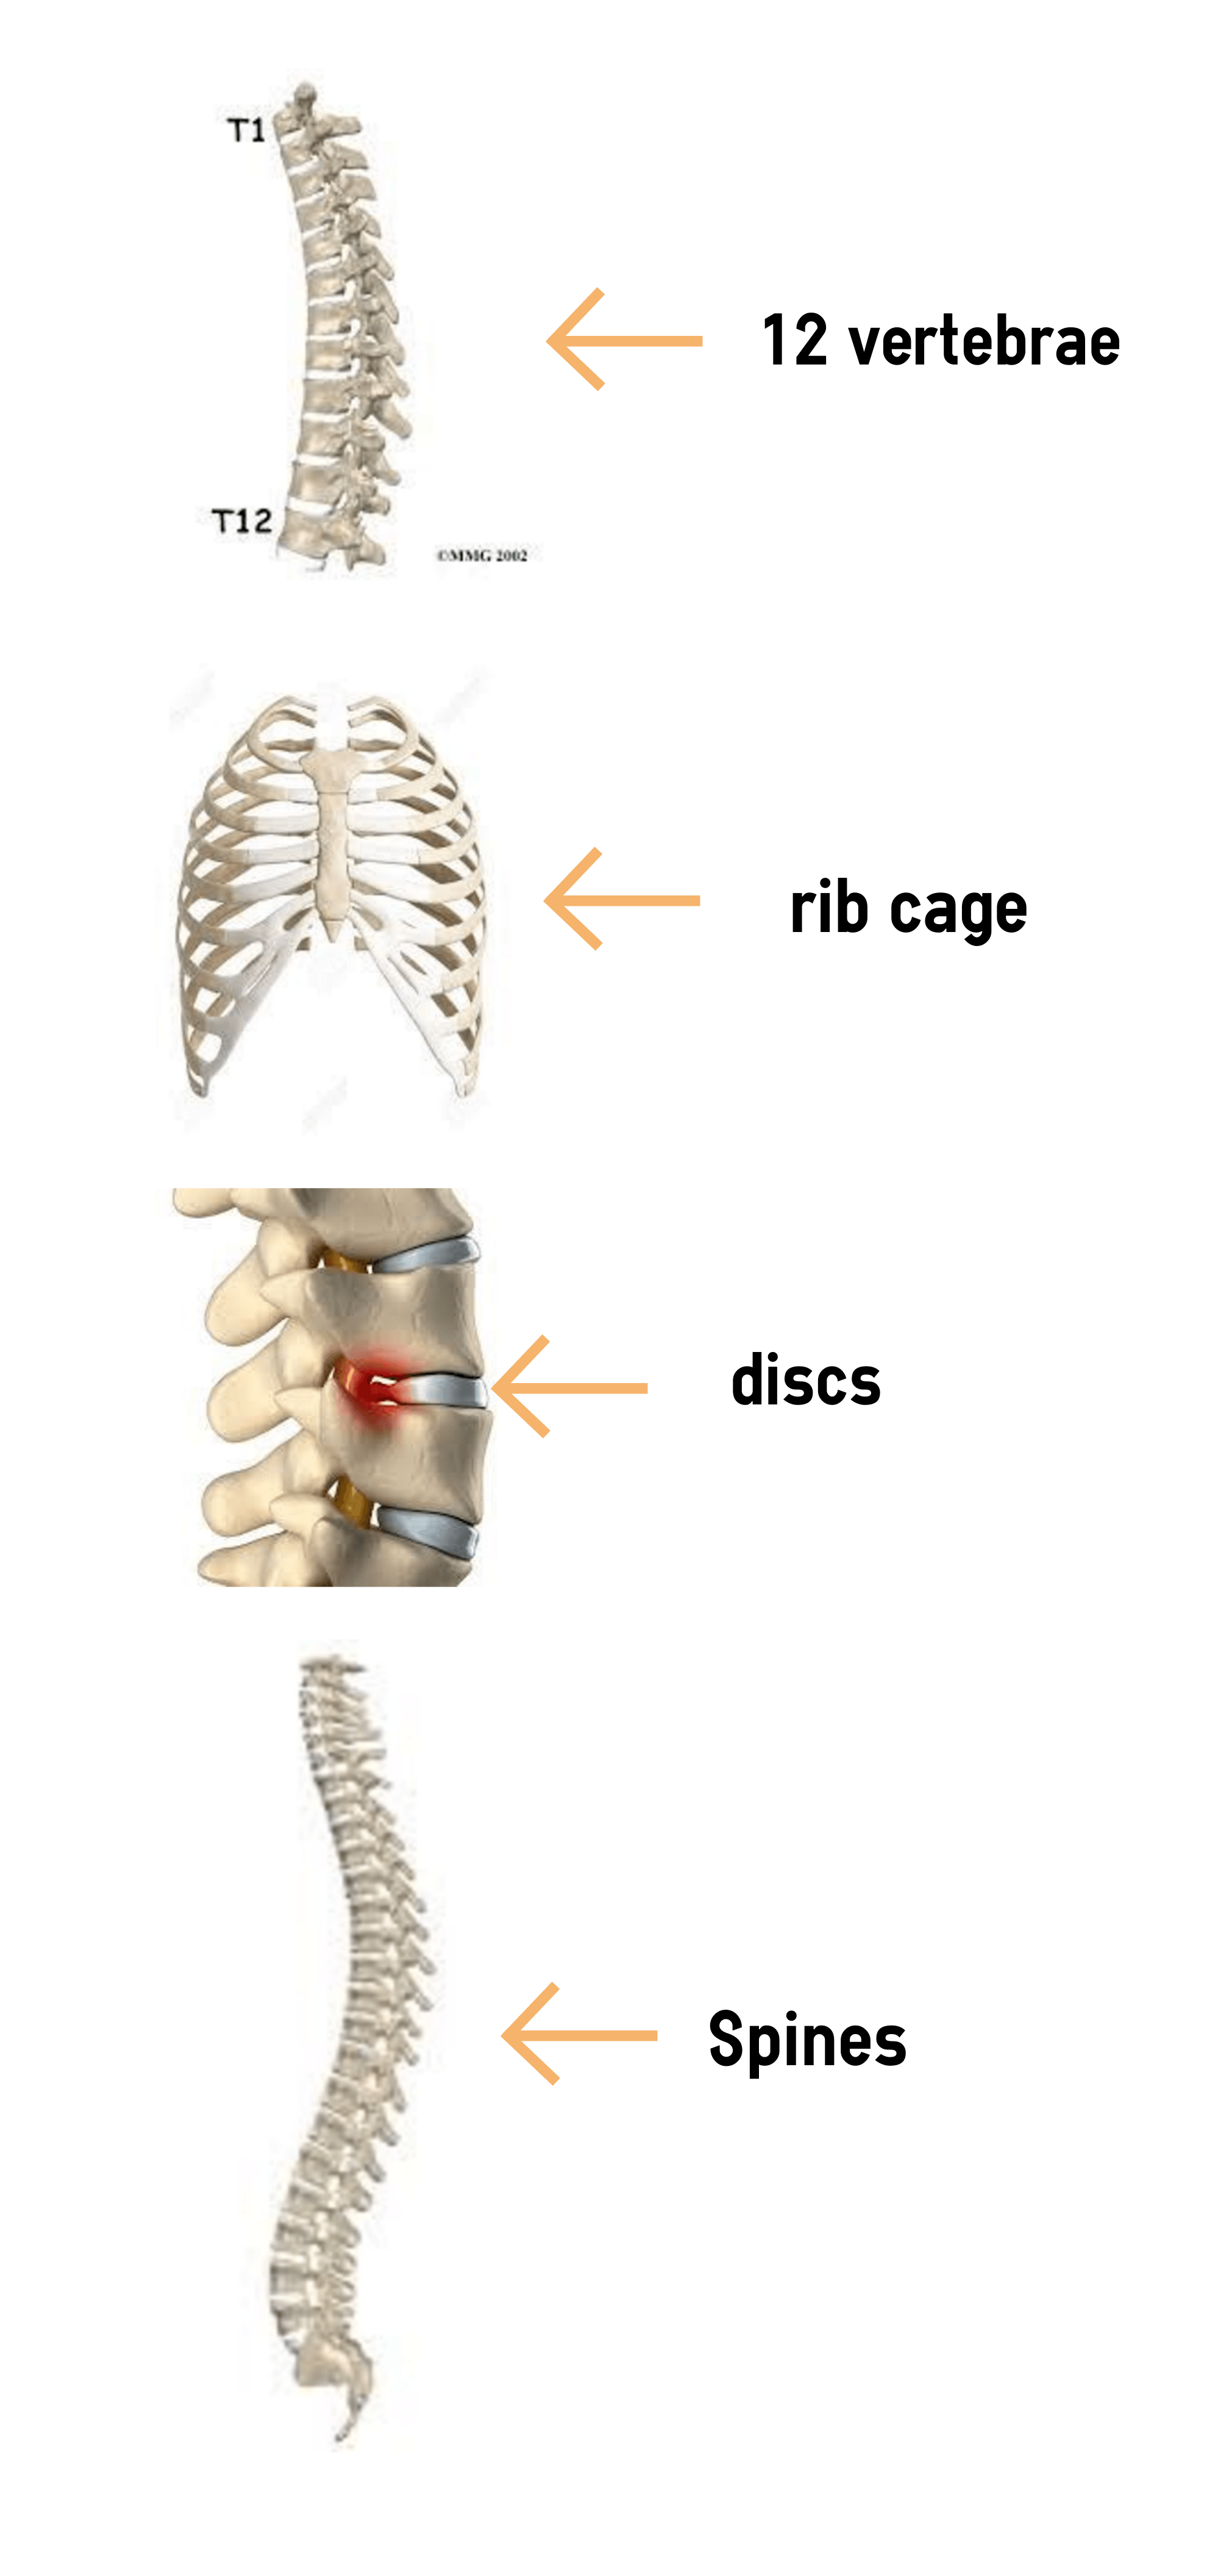 Thoracic spine is consisted of